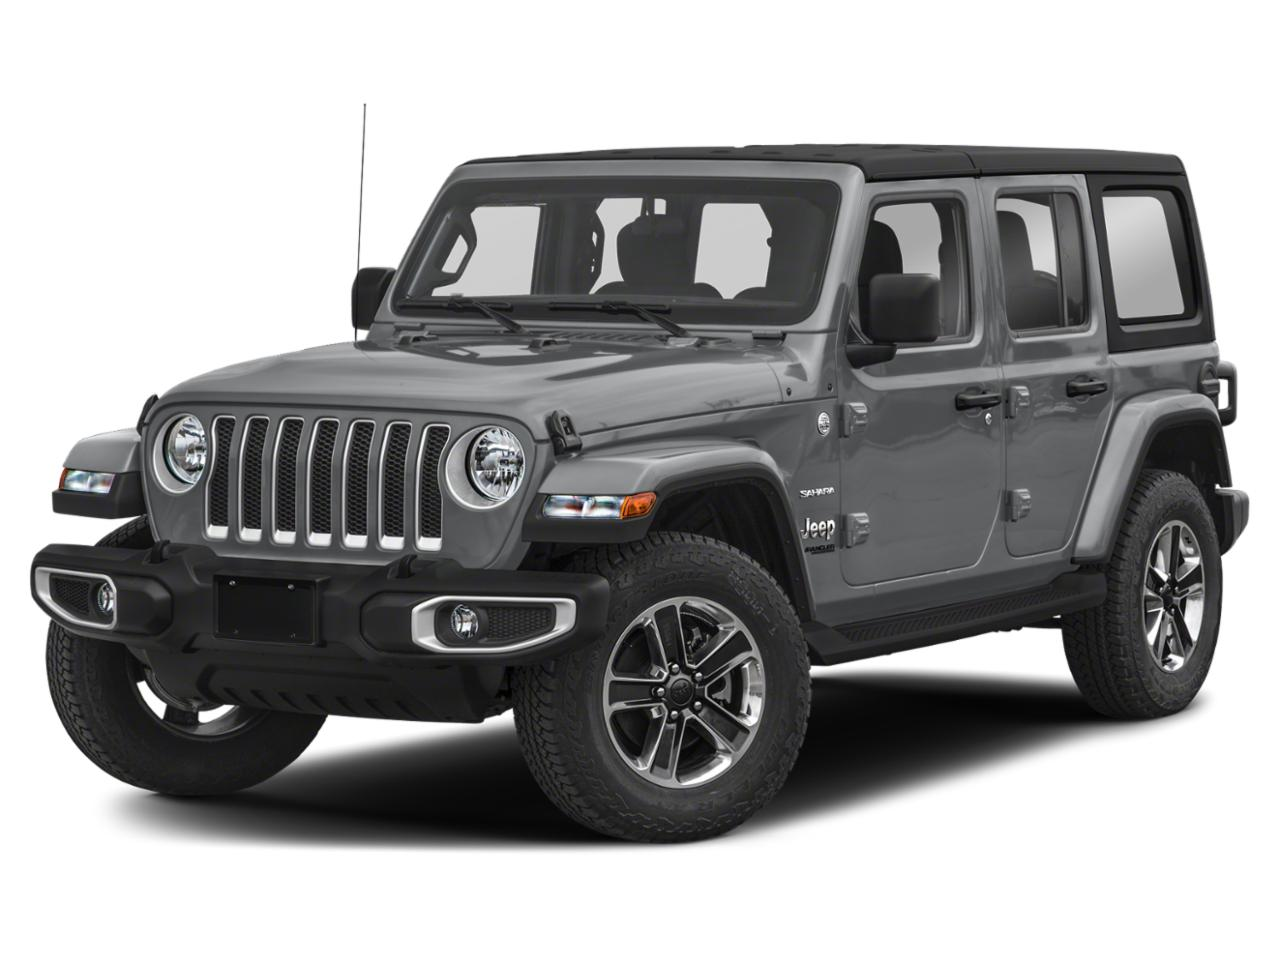 2019 Jeep Wrangler Unlimited Vehicle Photo in Safford, AZ 85546